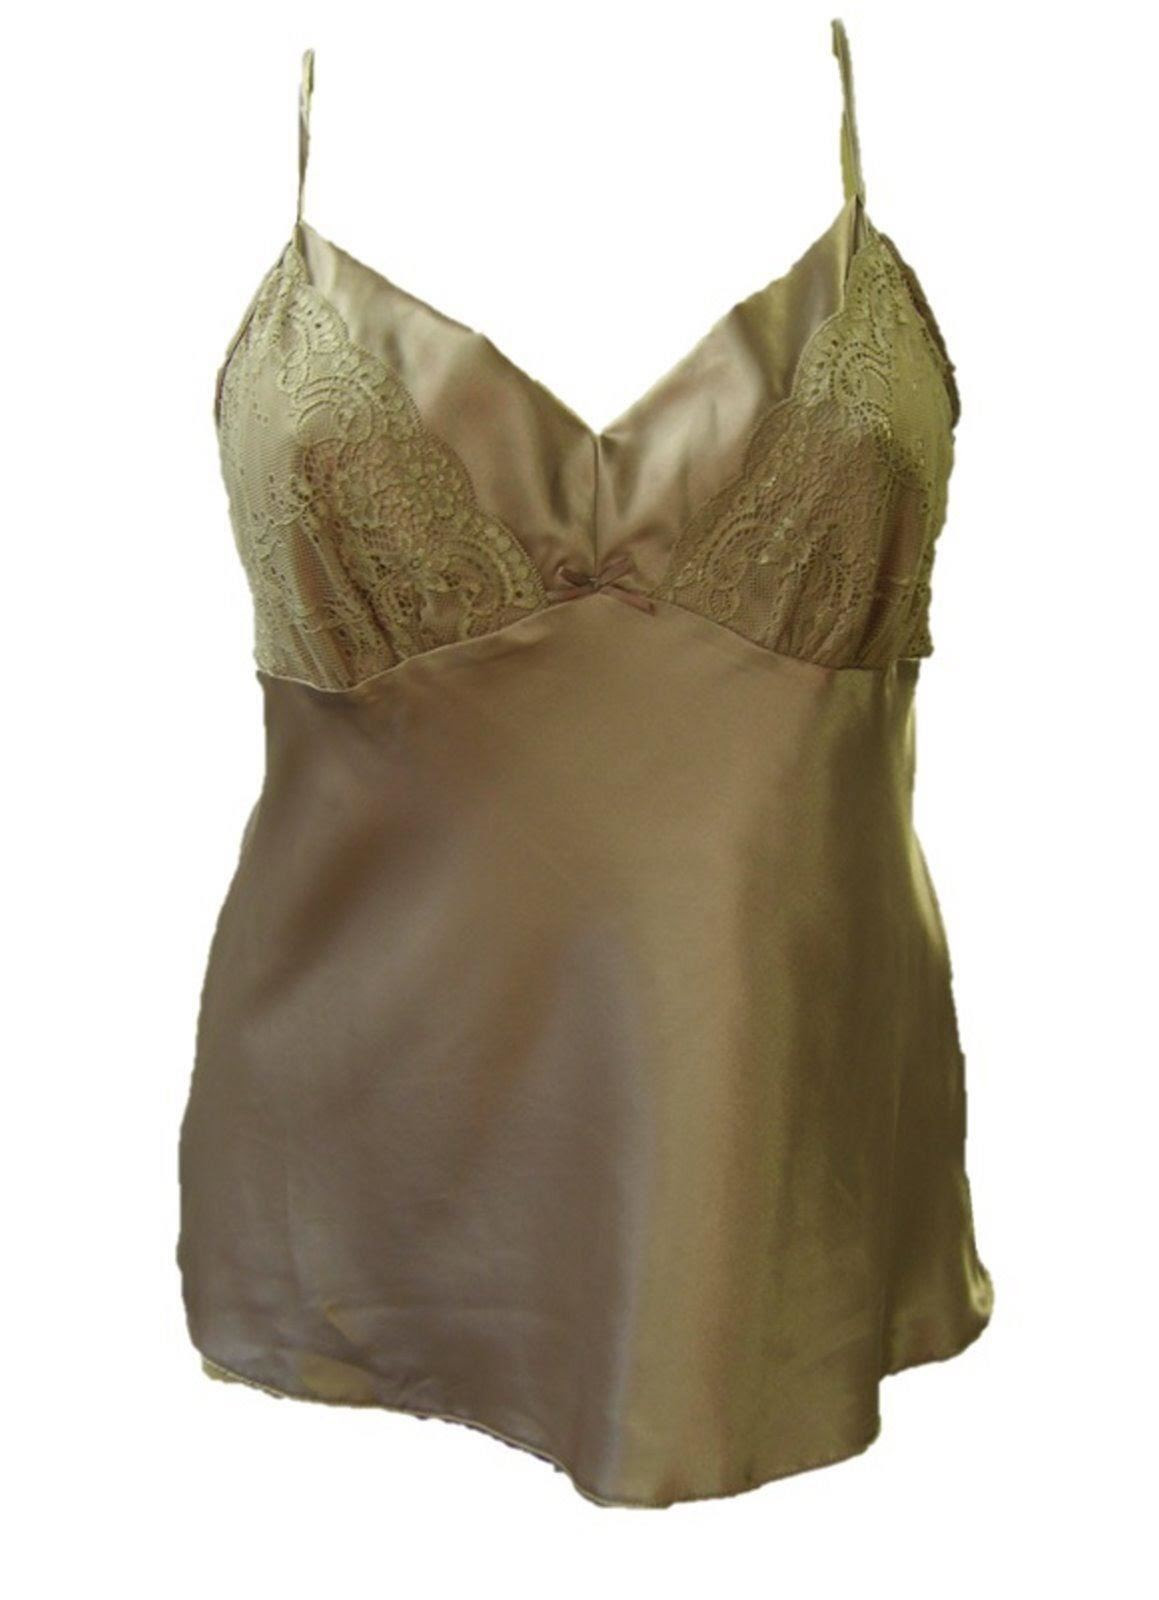 Kamloops camisole 16 size tops lace women for reviews rochester